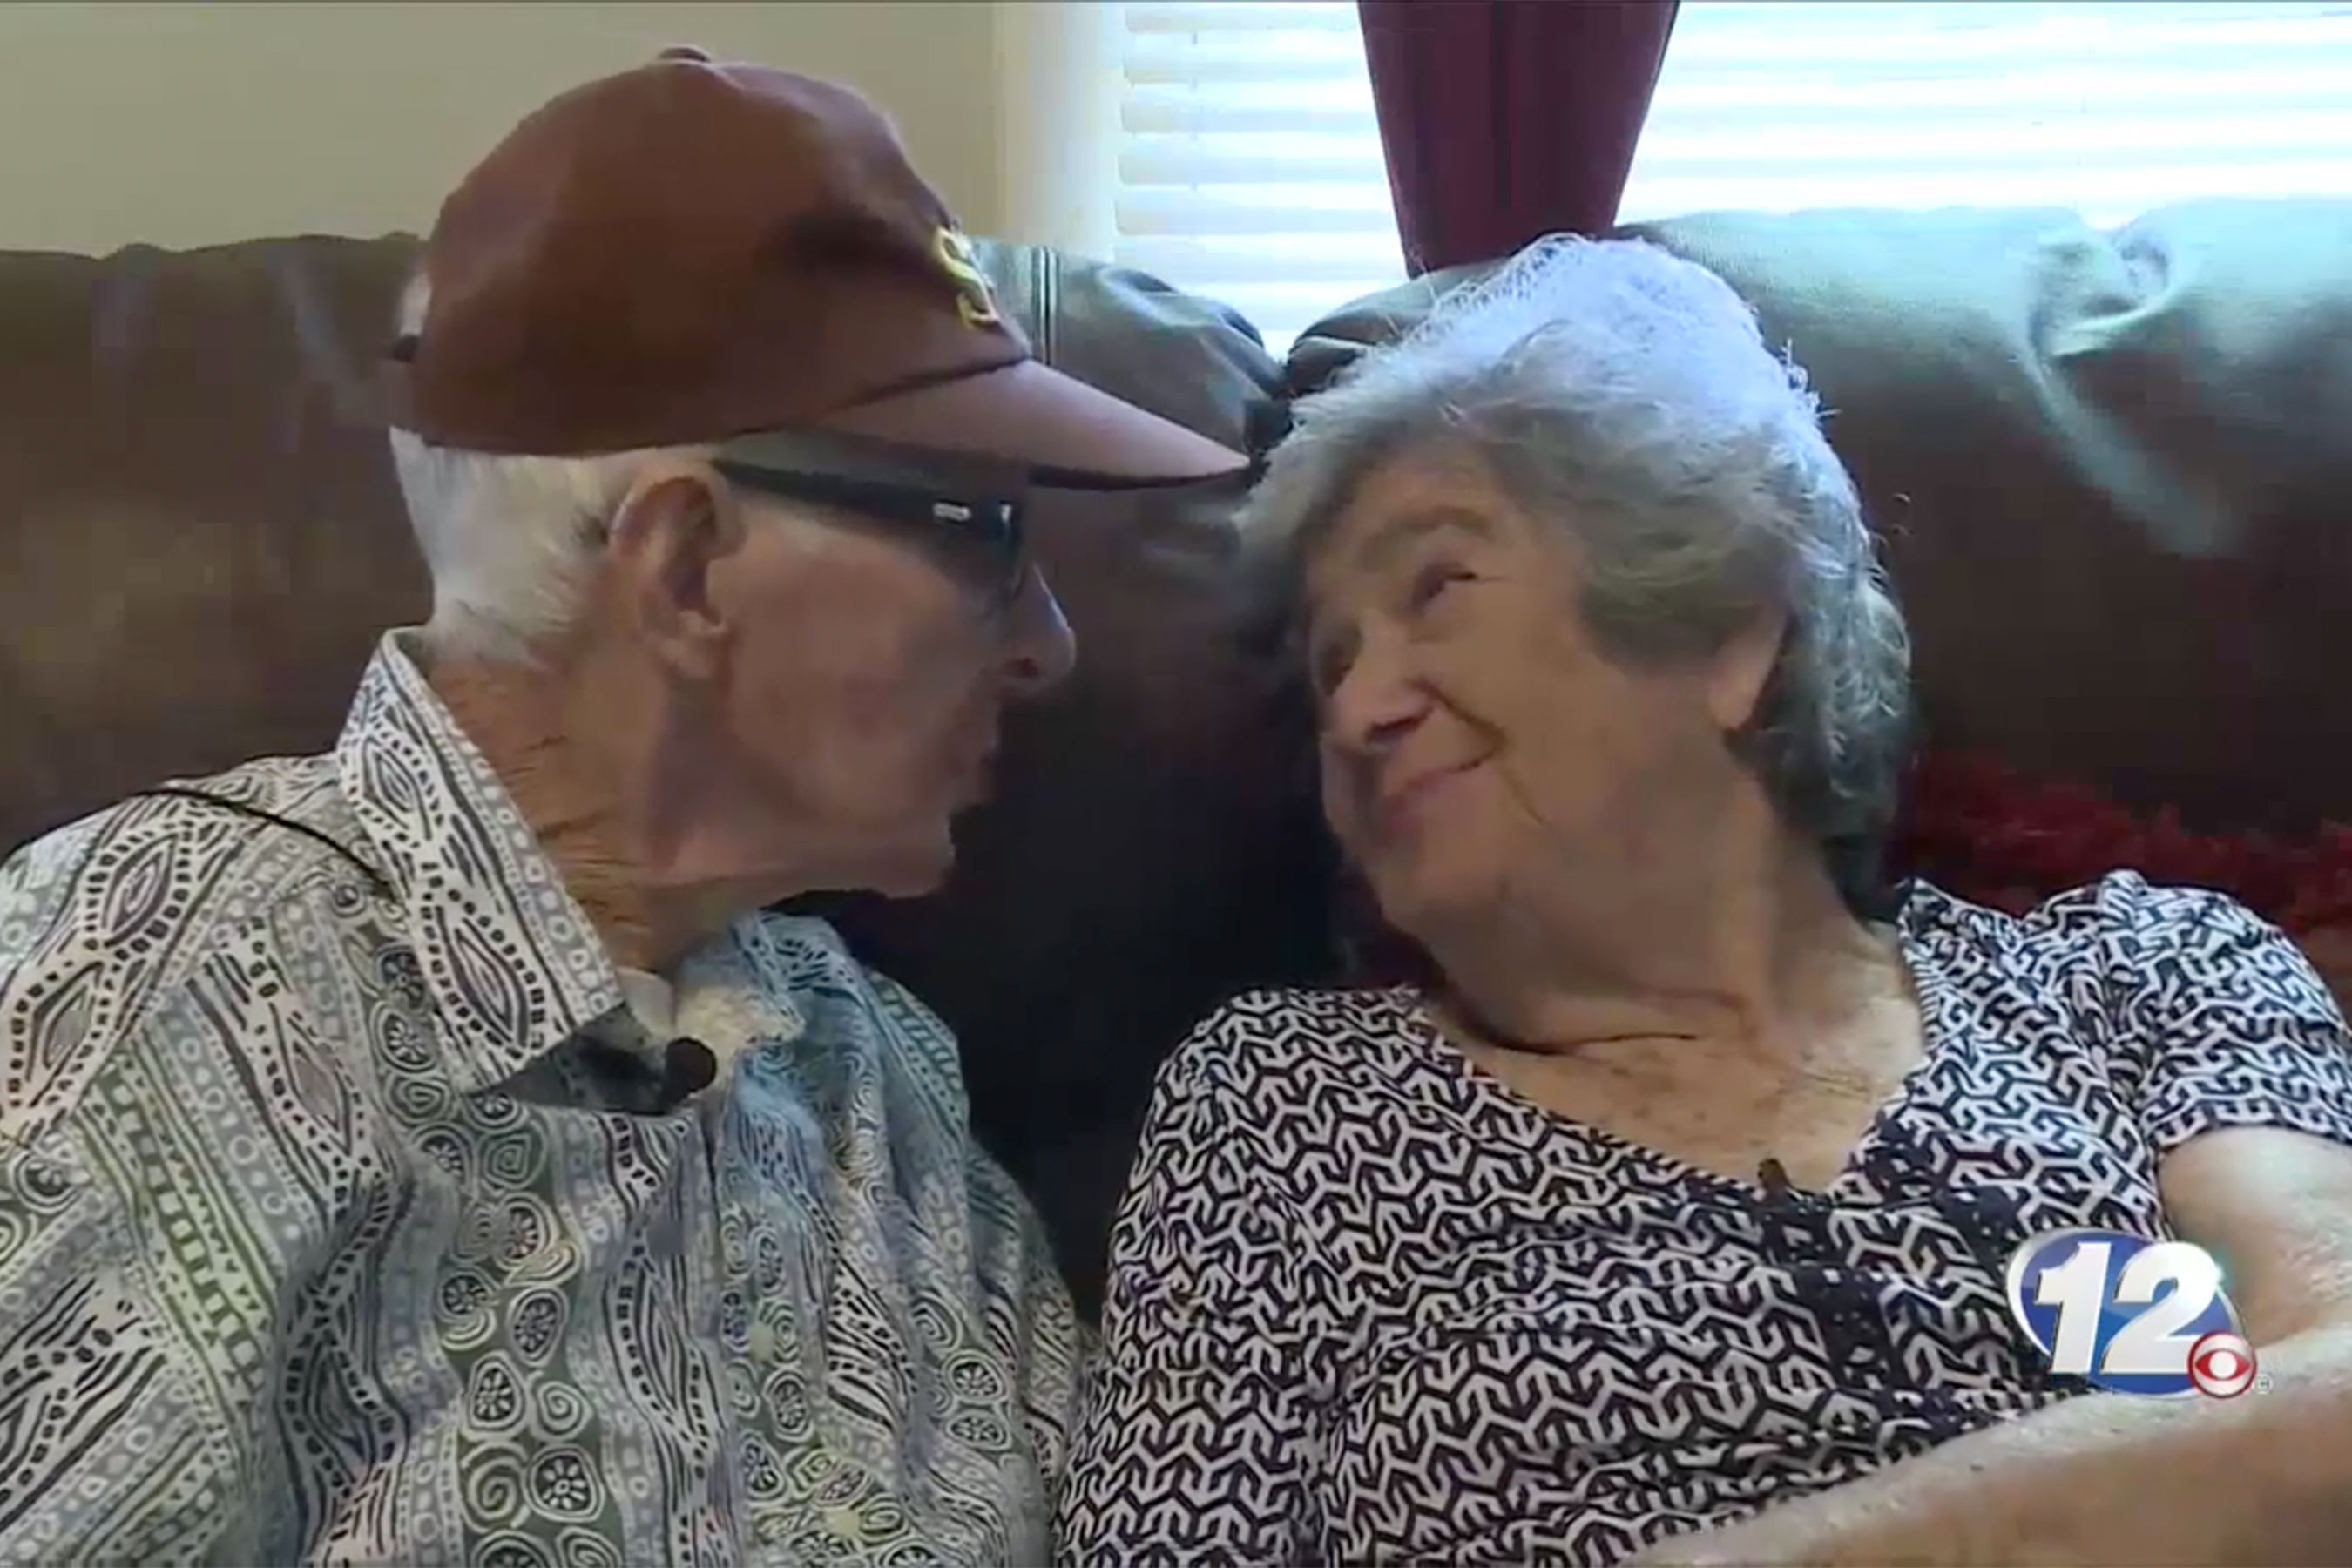 Husband and Wife Married for 71 Years Die Exactly 12 Hours Apart: 'They Are Together in Heaven'